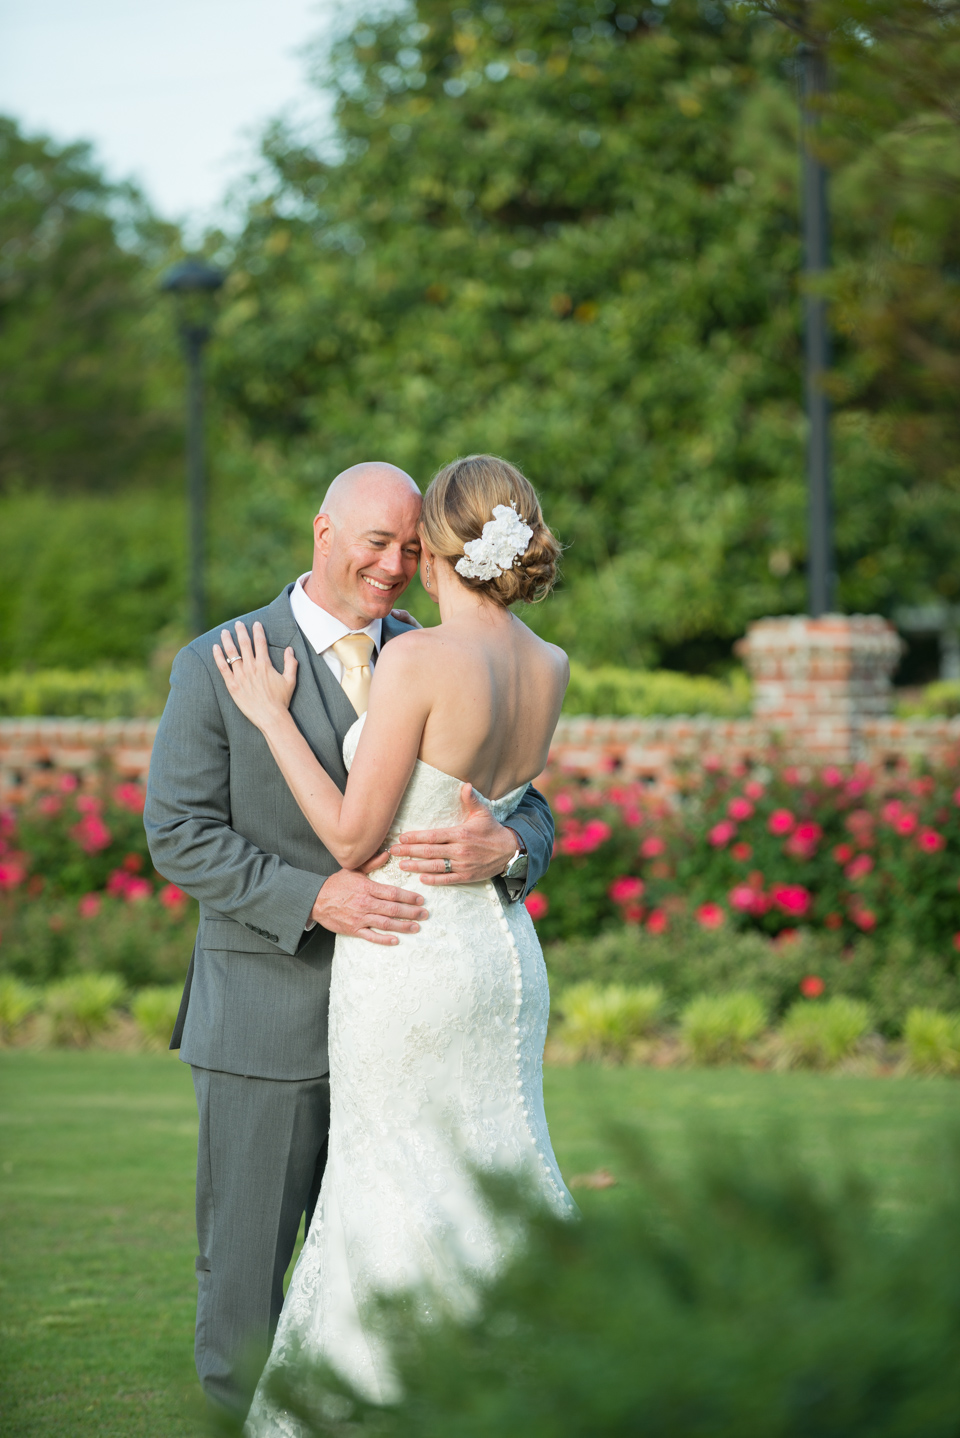 outdoor portrait, romantic wedding couple embrace